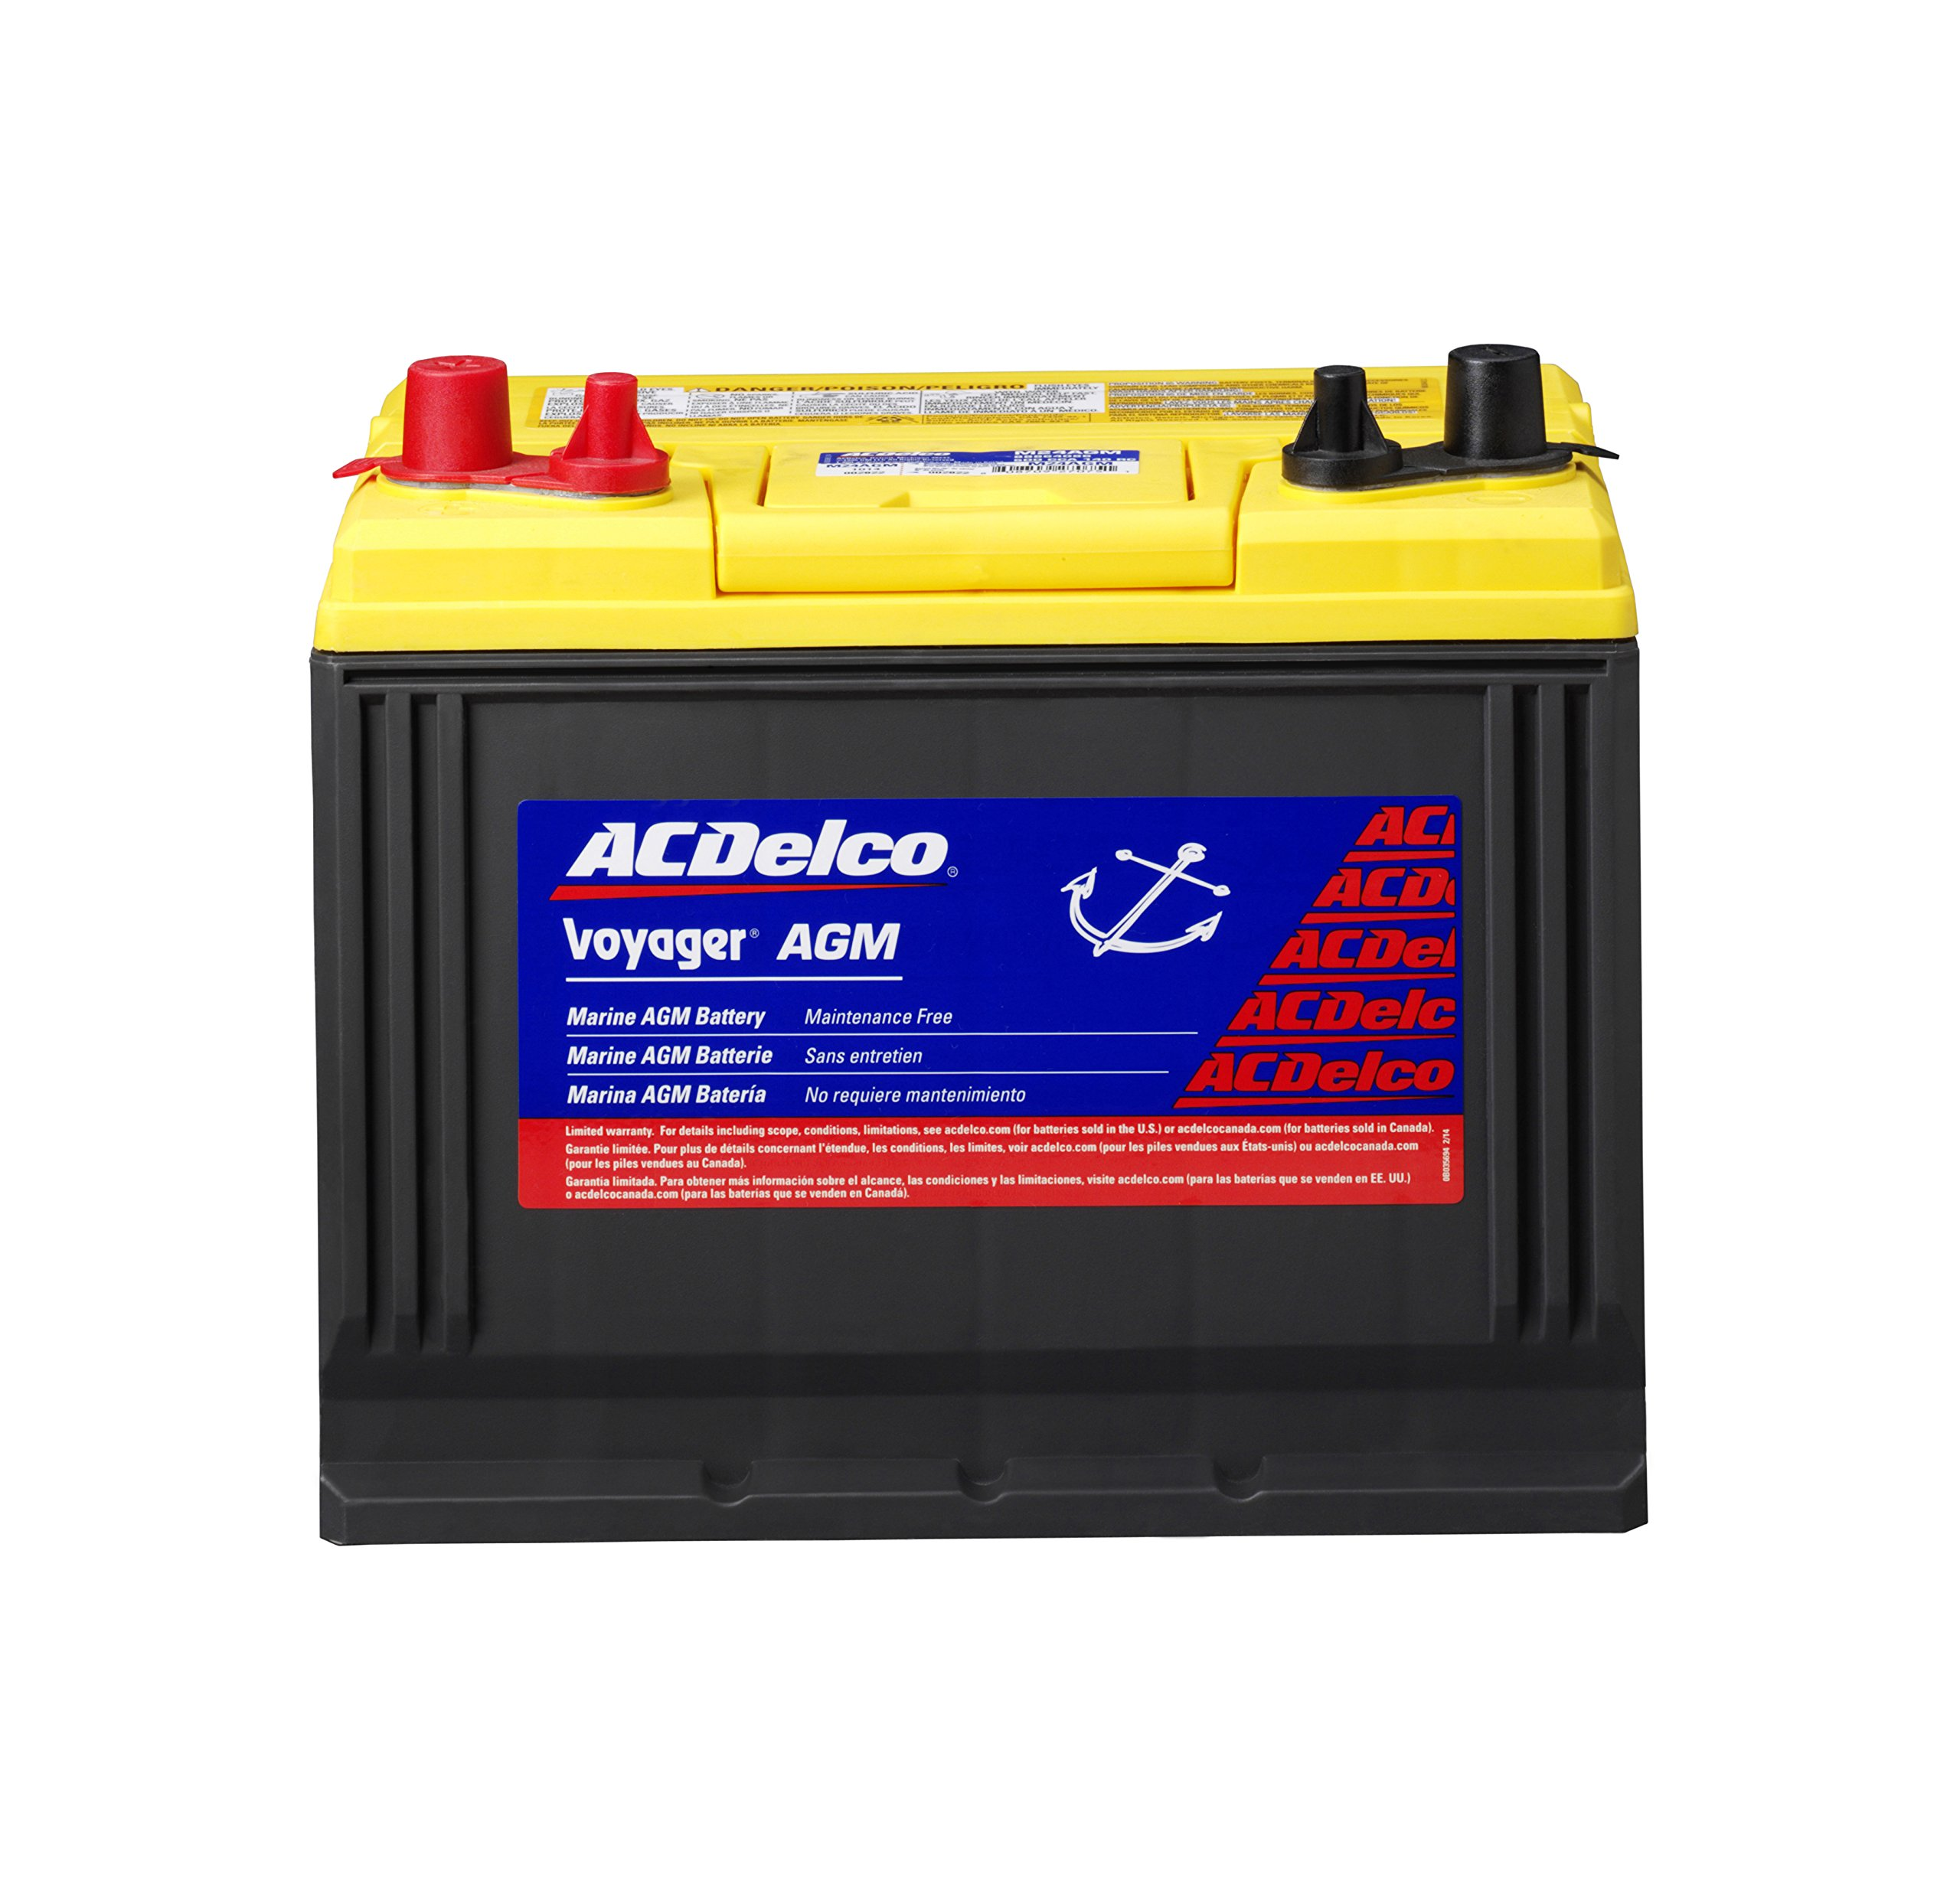 ACDelco M24AGM Professional AGM Voyager BCI Group 24 Battery by ACDelco